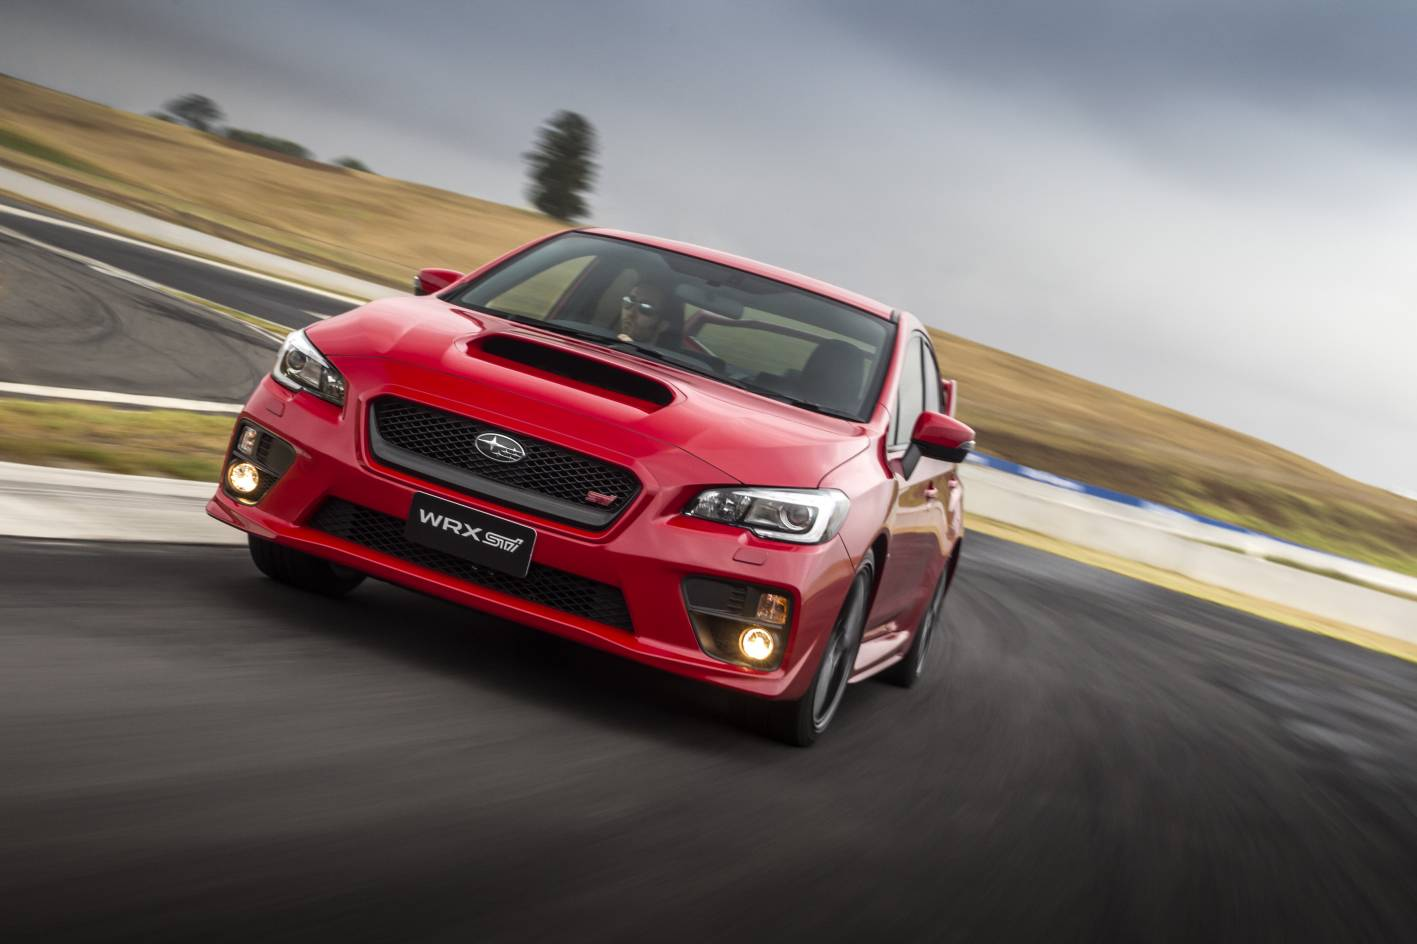 Subaru WRX — Auto Expert by John Cadogan - save thousands on